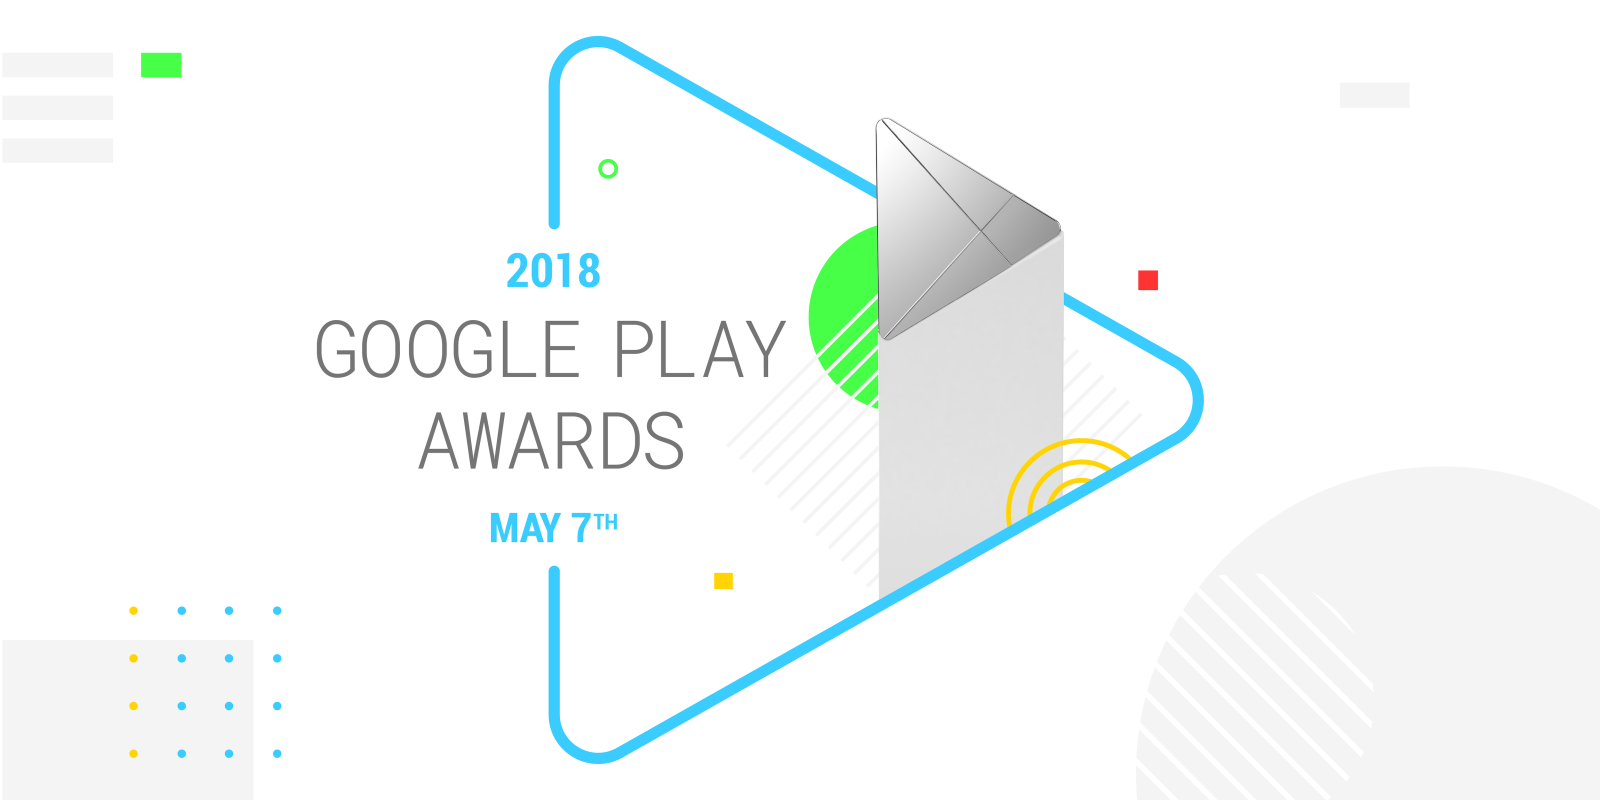 2018 Google Play Award winners highlight the top Android apps and games